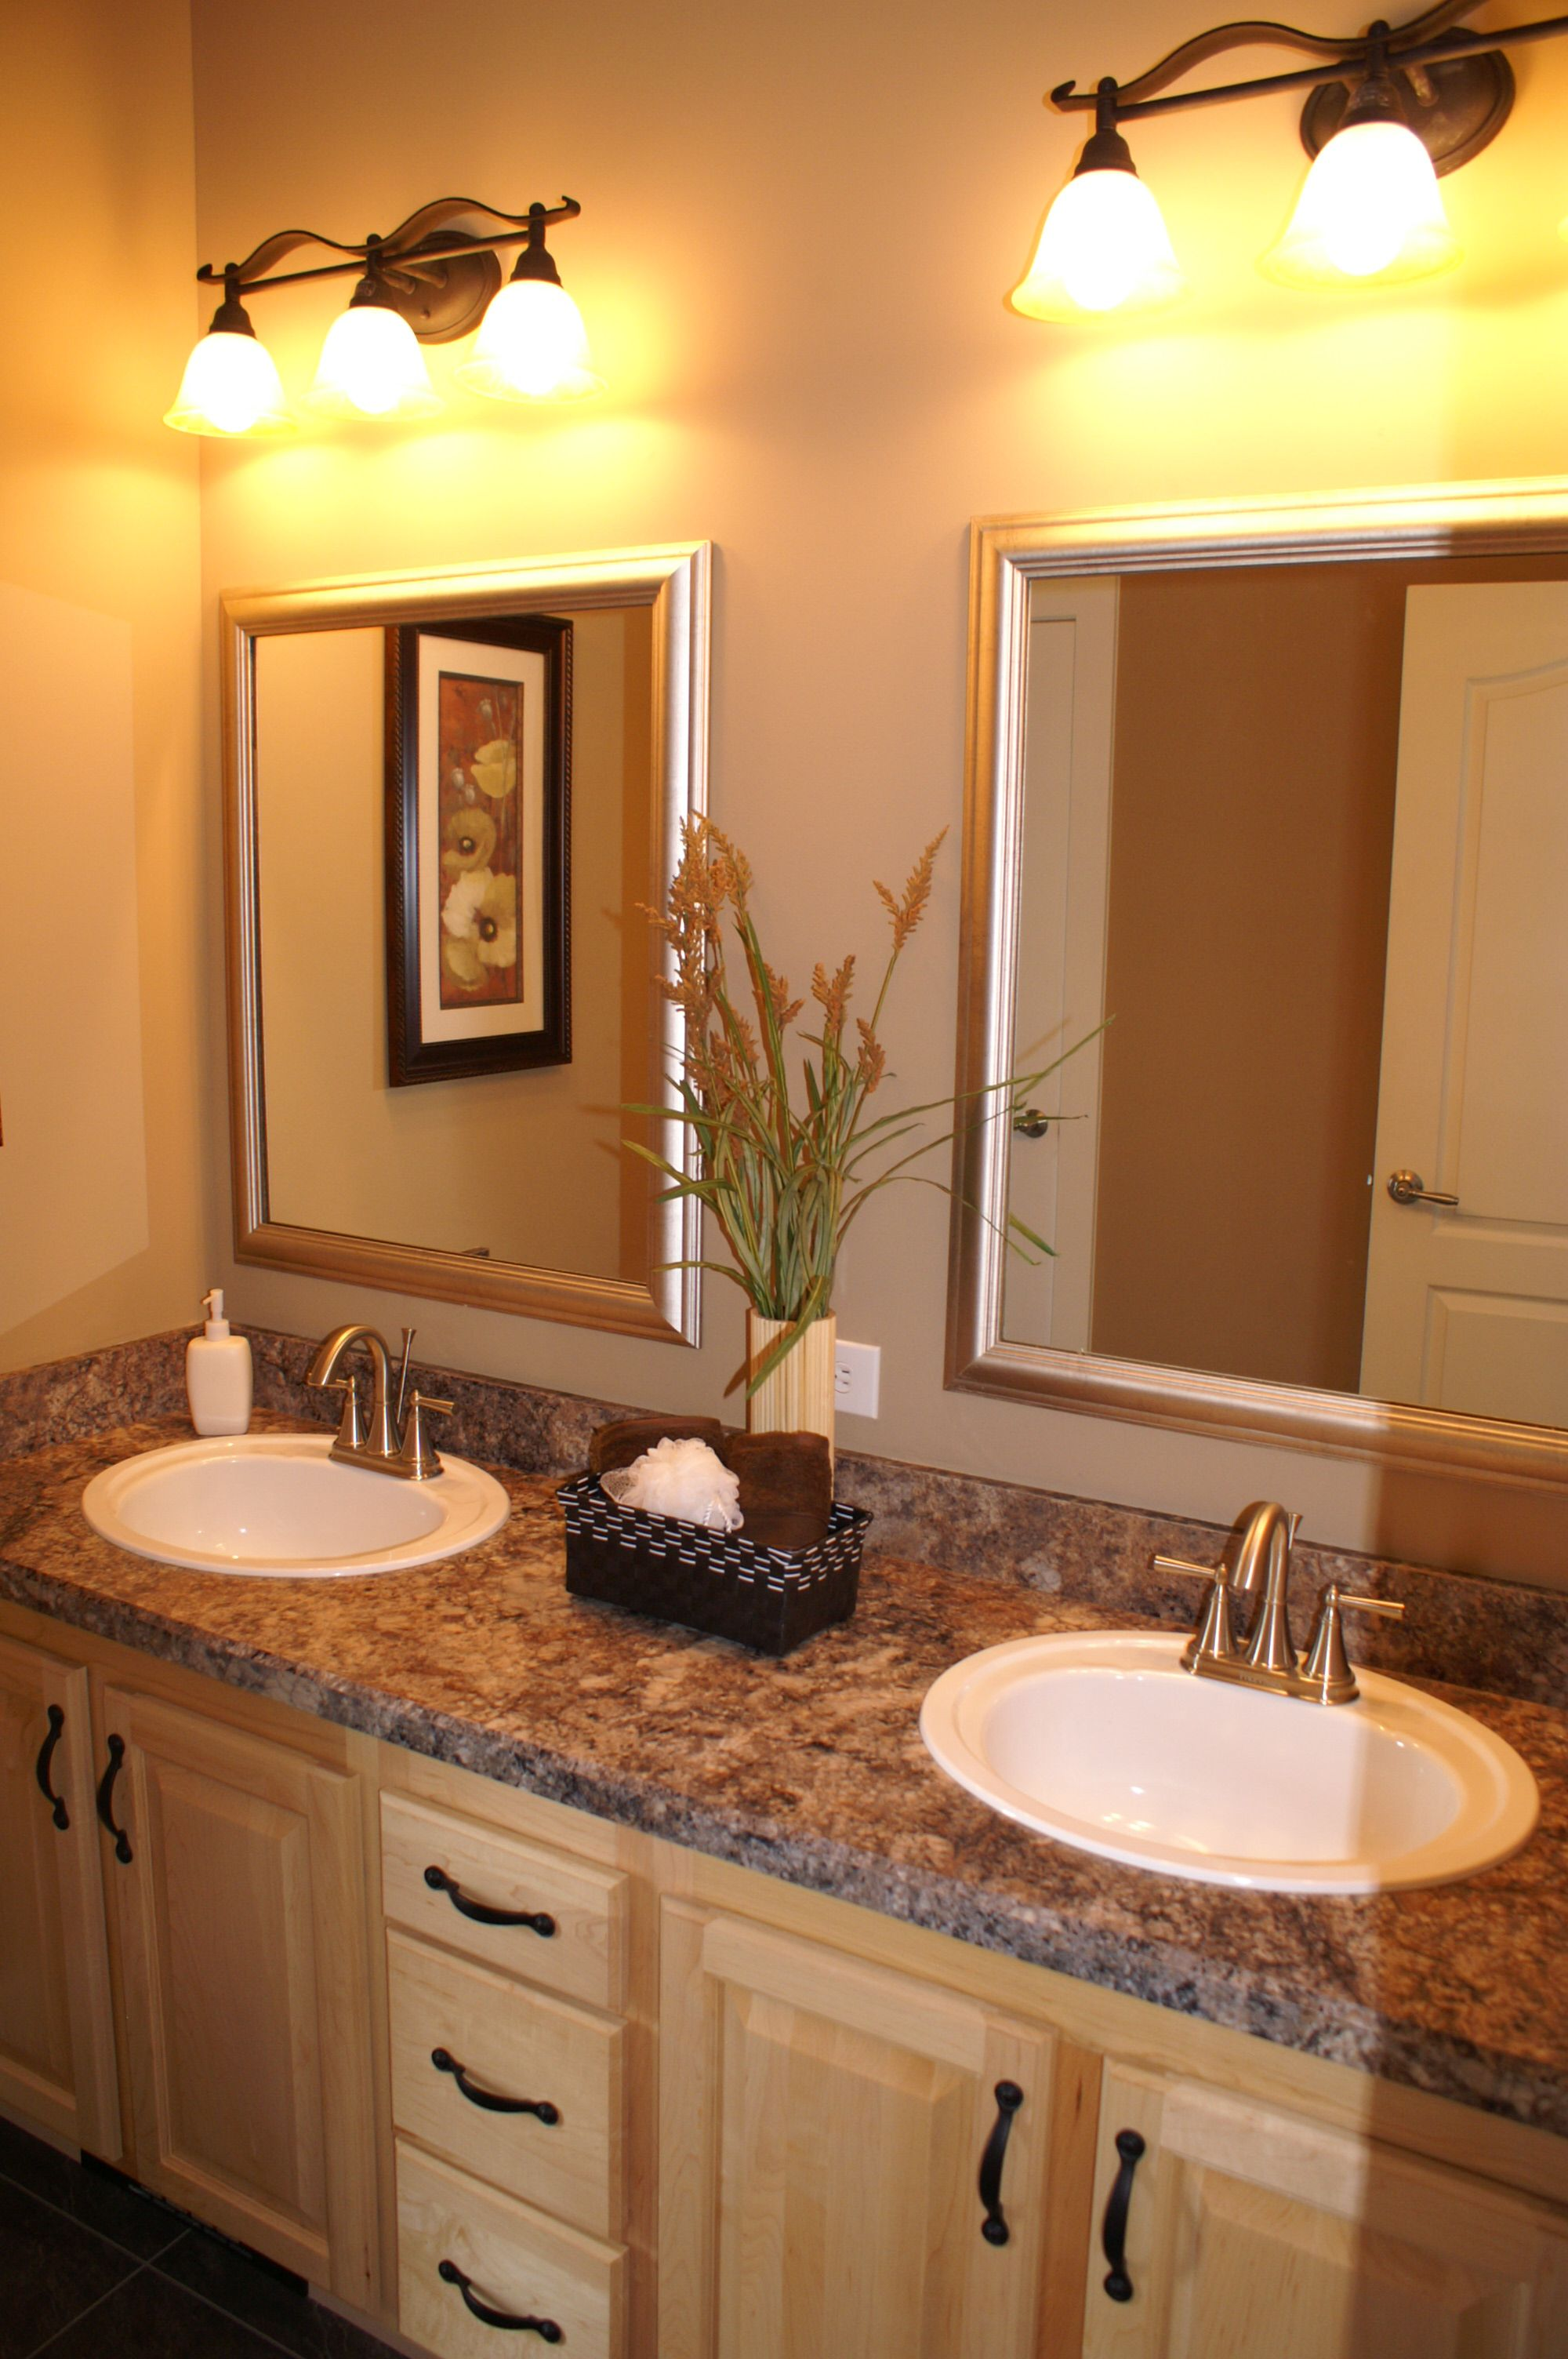 interesting bathroom light fixtures%0A Individual framed mirrors  u     separate fixtures on a double sink vanity   huge difference than big mirror  u     one vanity light